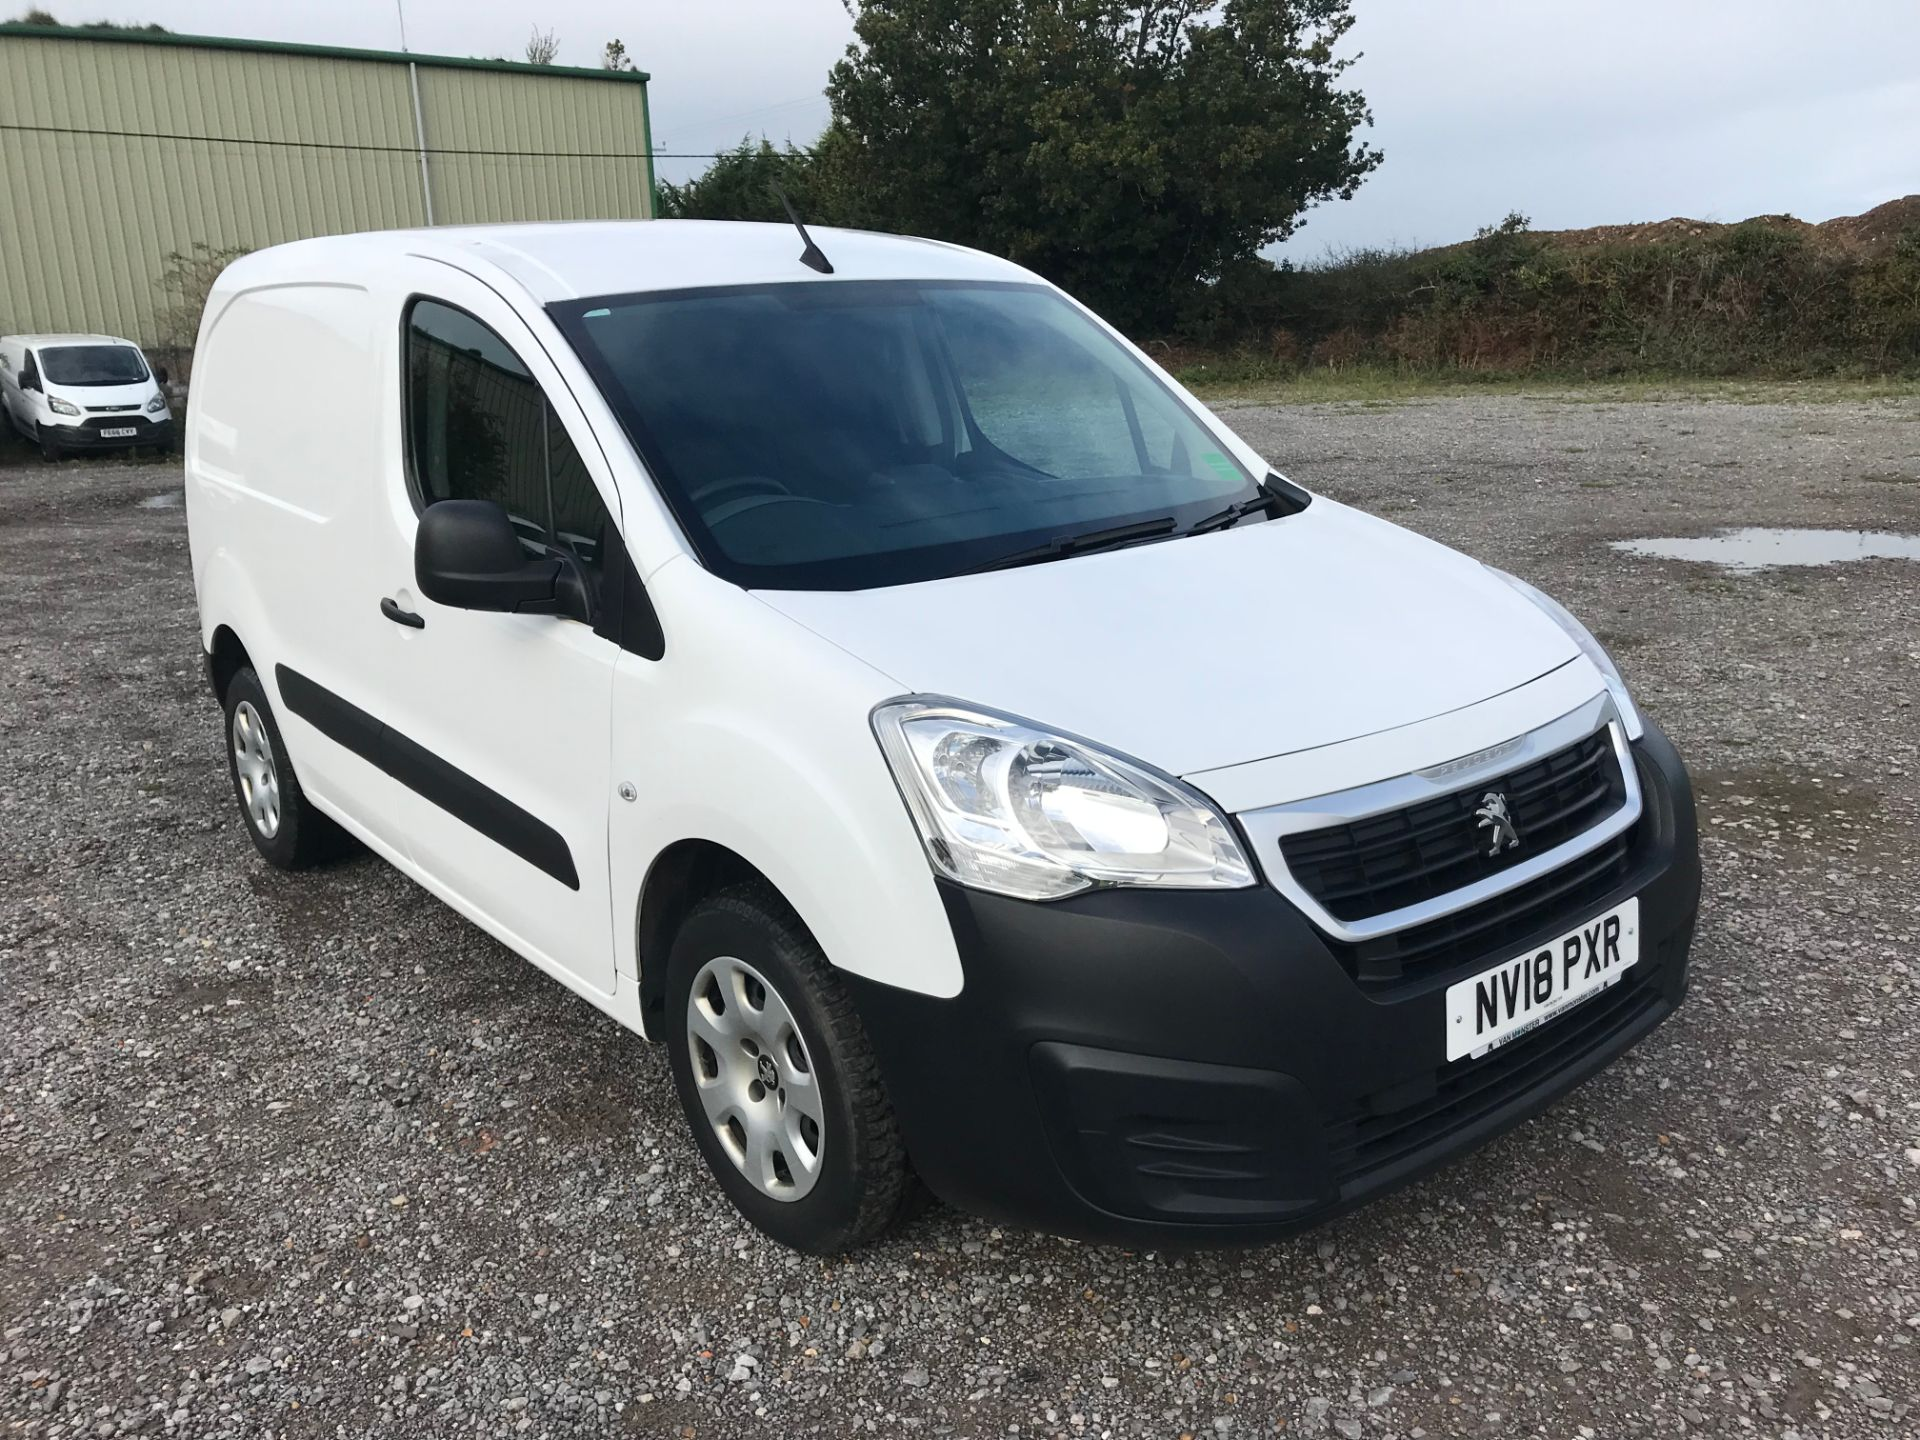 2018 Peugeot Partner 850 1.6 Bluehdi 100 Professional Van [Non Ss]*Restricted to 69MPH* (NV18PXR)